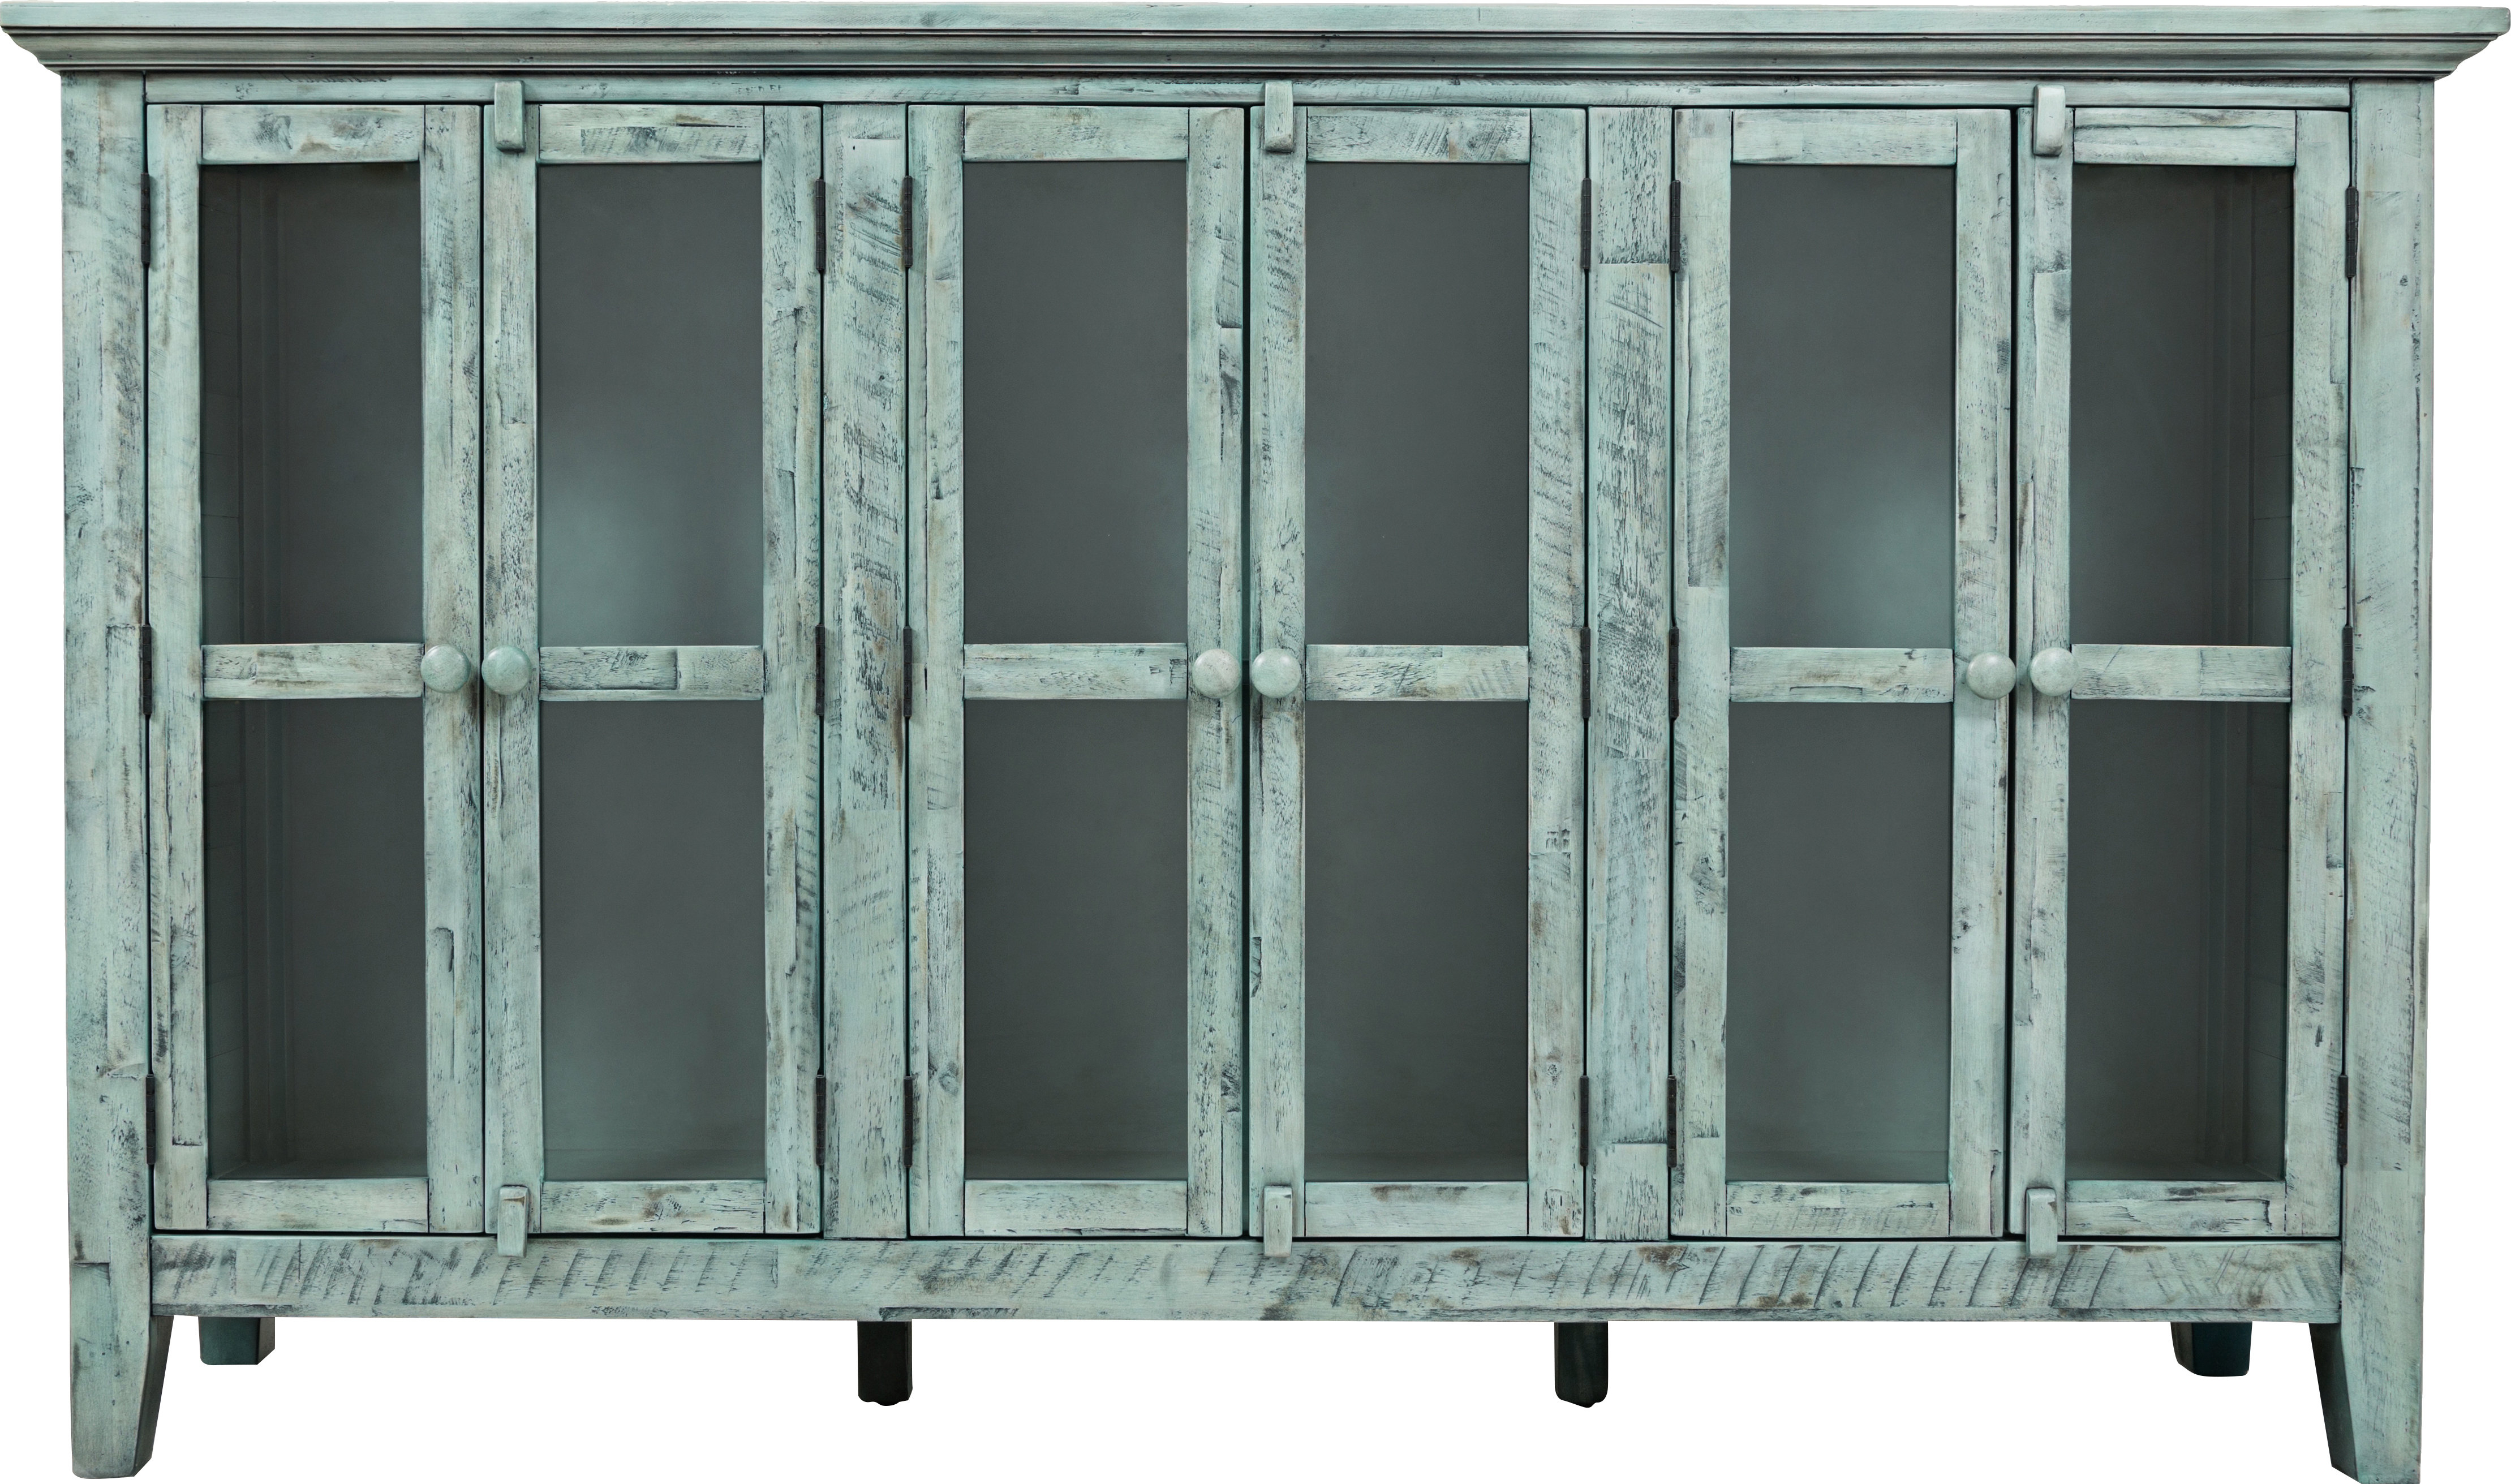 Eau Claire 6 Door Accent Cabinet With Regard To Eau Claire 6 Door Accent Cabinets (Gallery 4 of 30)